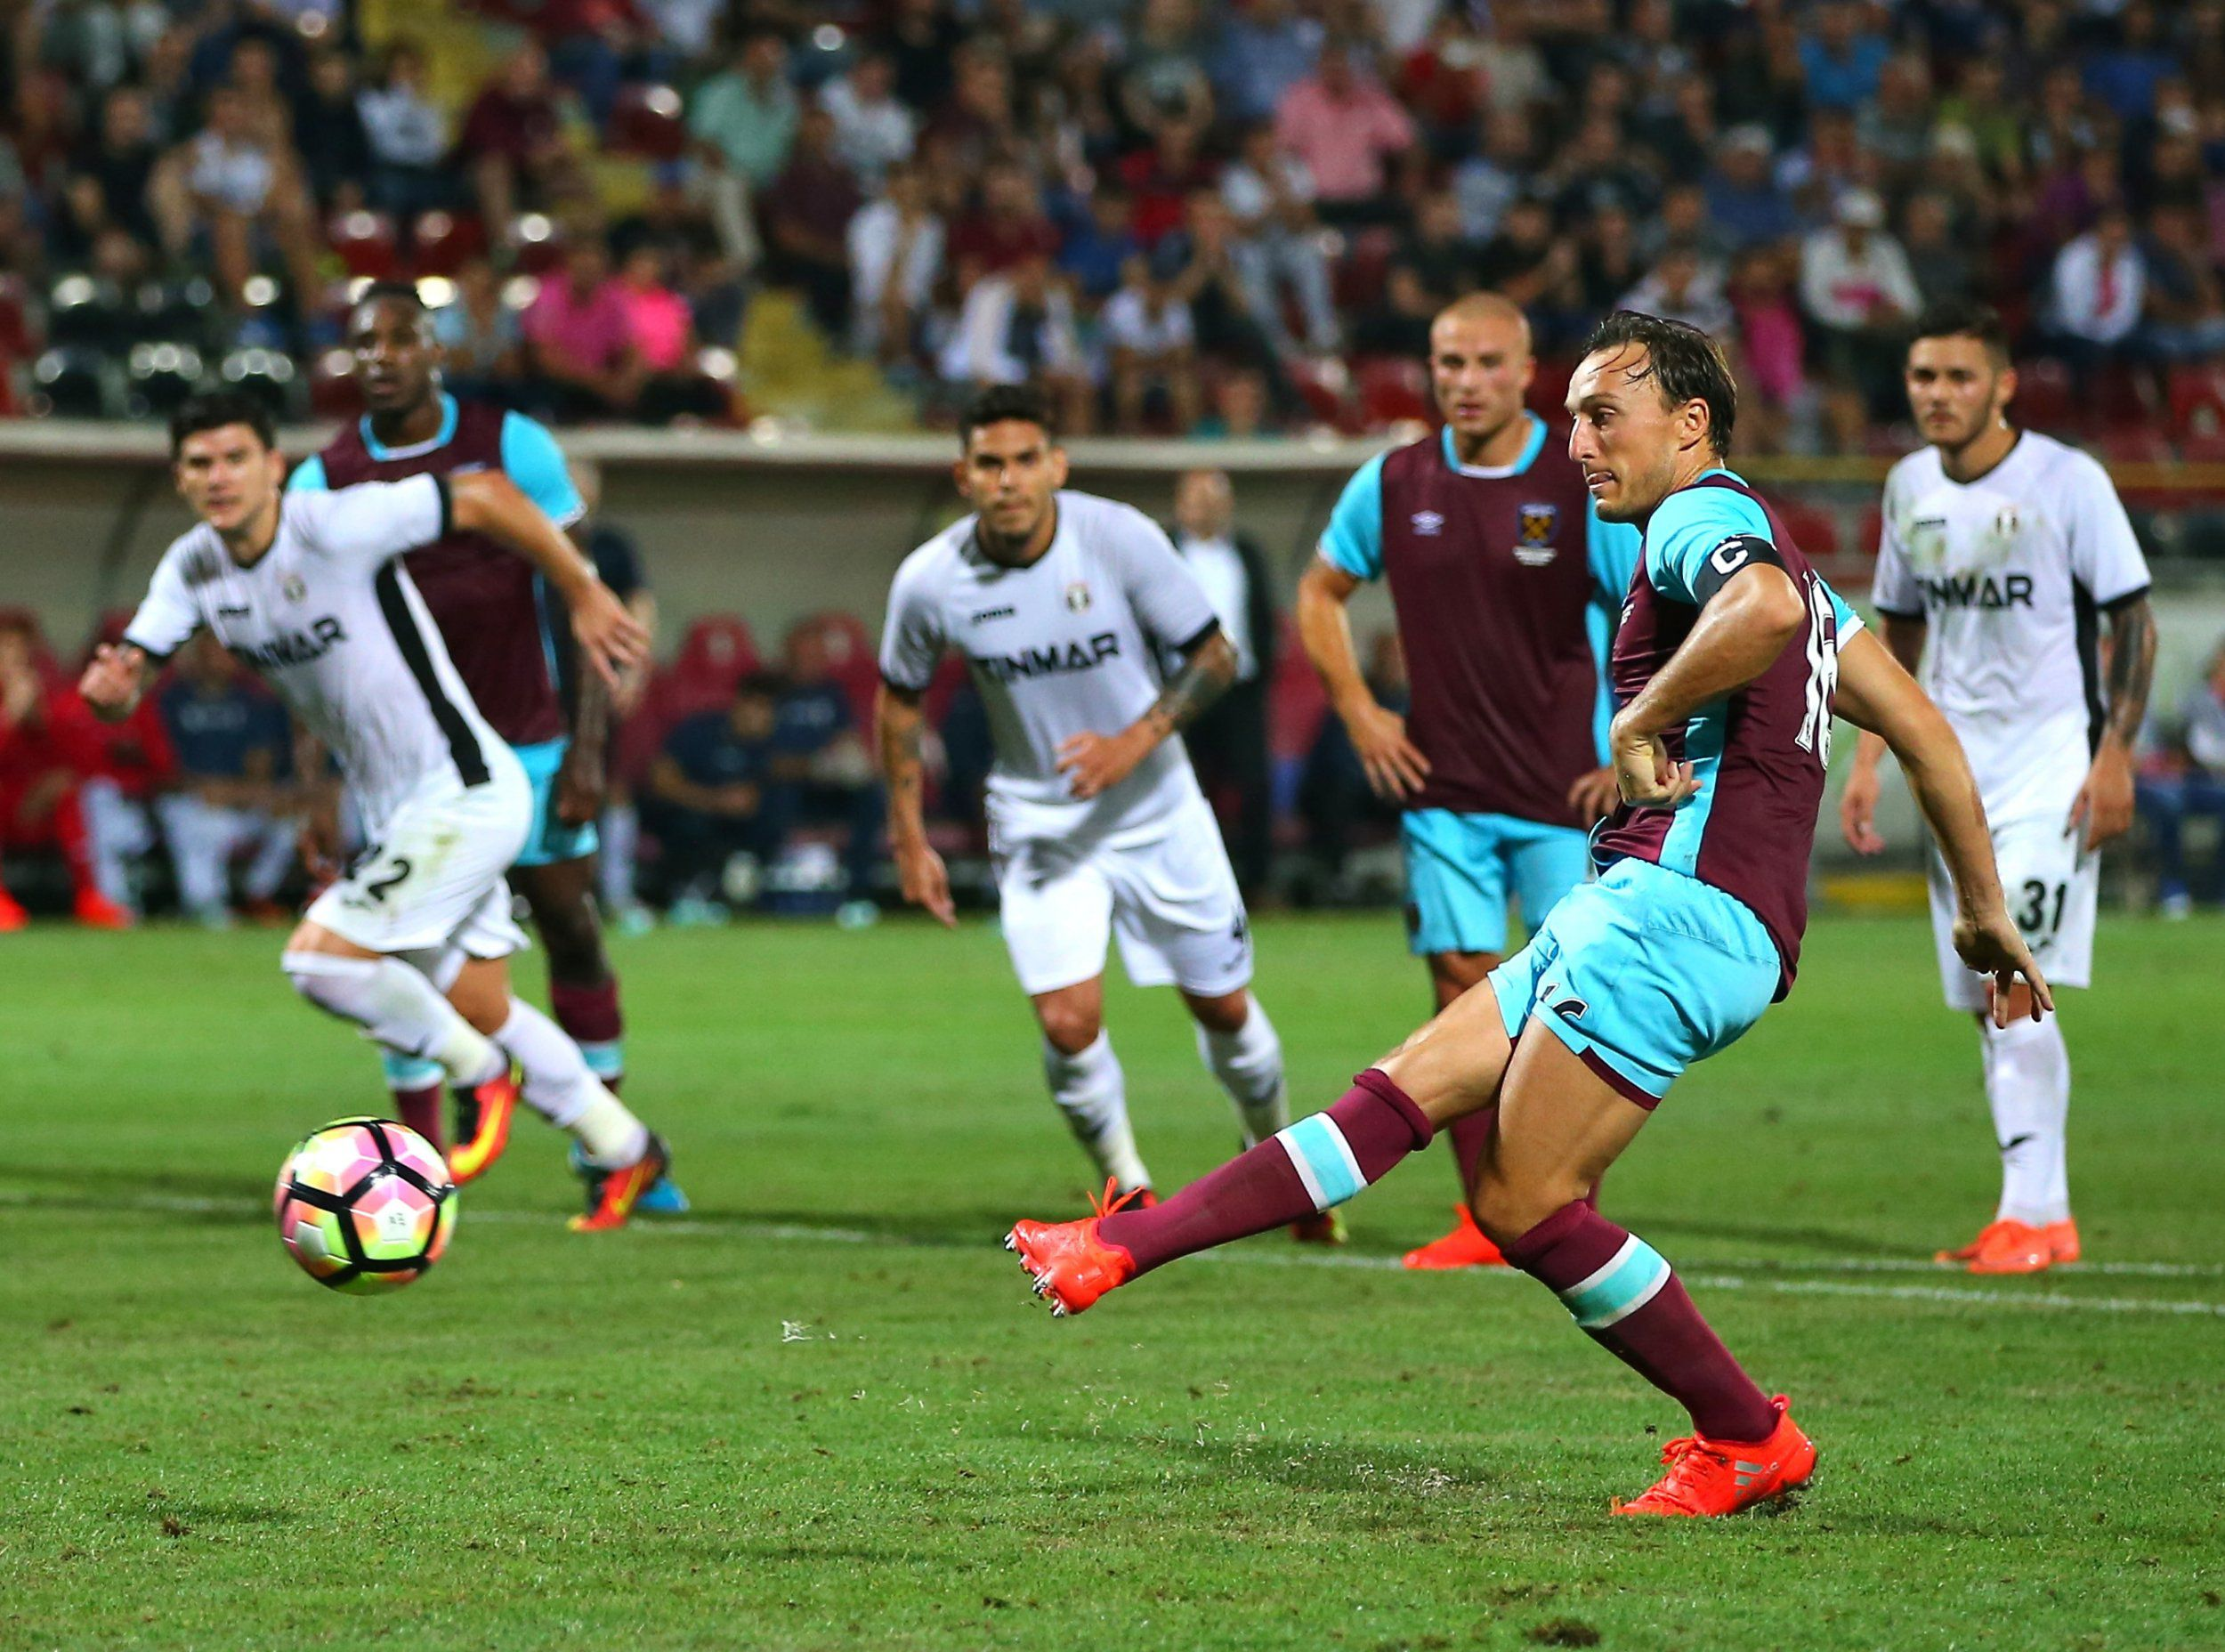 West Ham fans order Sam Allardyce to call up Mark Noble for England after early statement